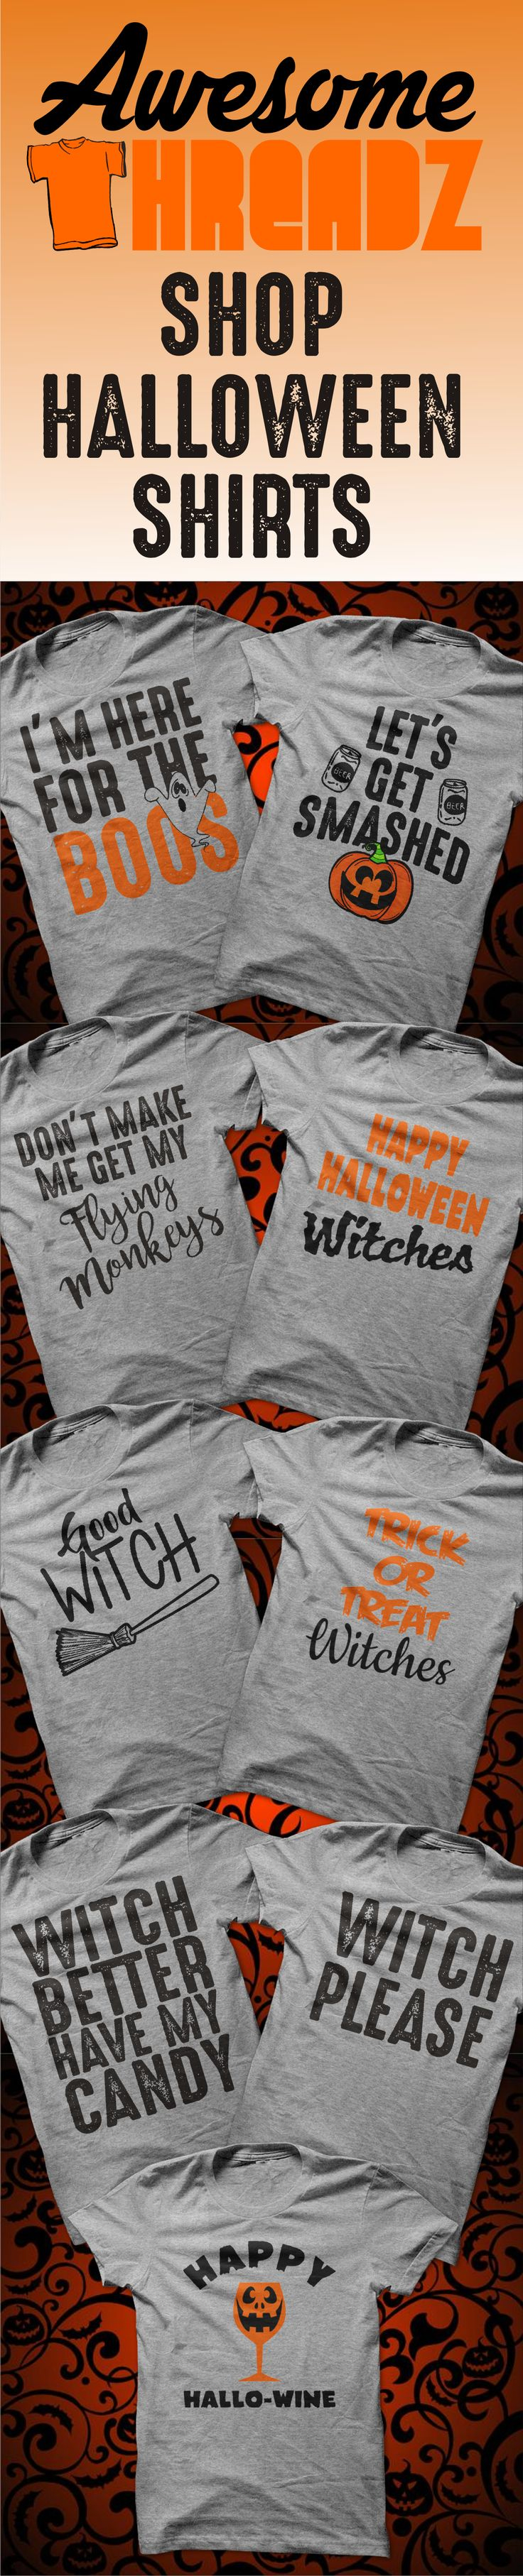 Shop now for your new Halloween Shirt. We also have 100's of other shirts to choose from. Check us out! Shirts starting at $20.00 We carry Men's Shirts, Women's Shirts and Hoodies